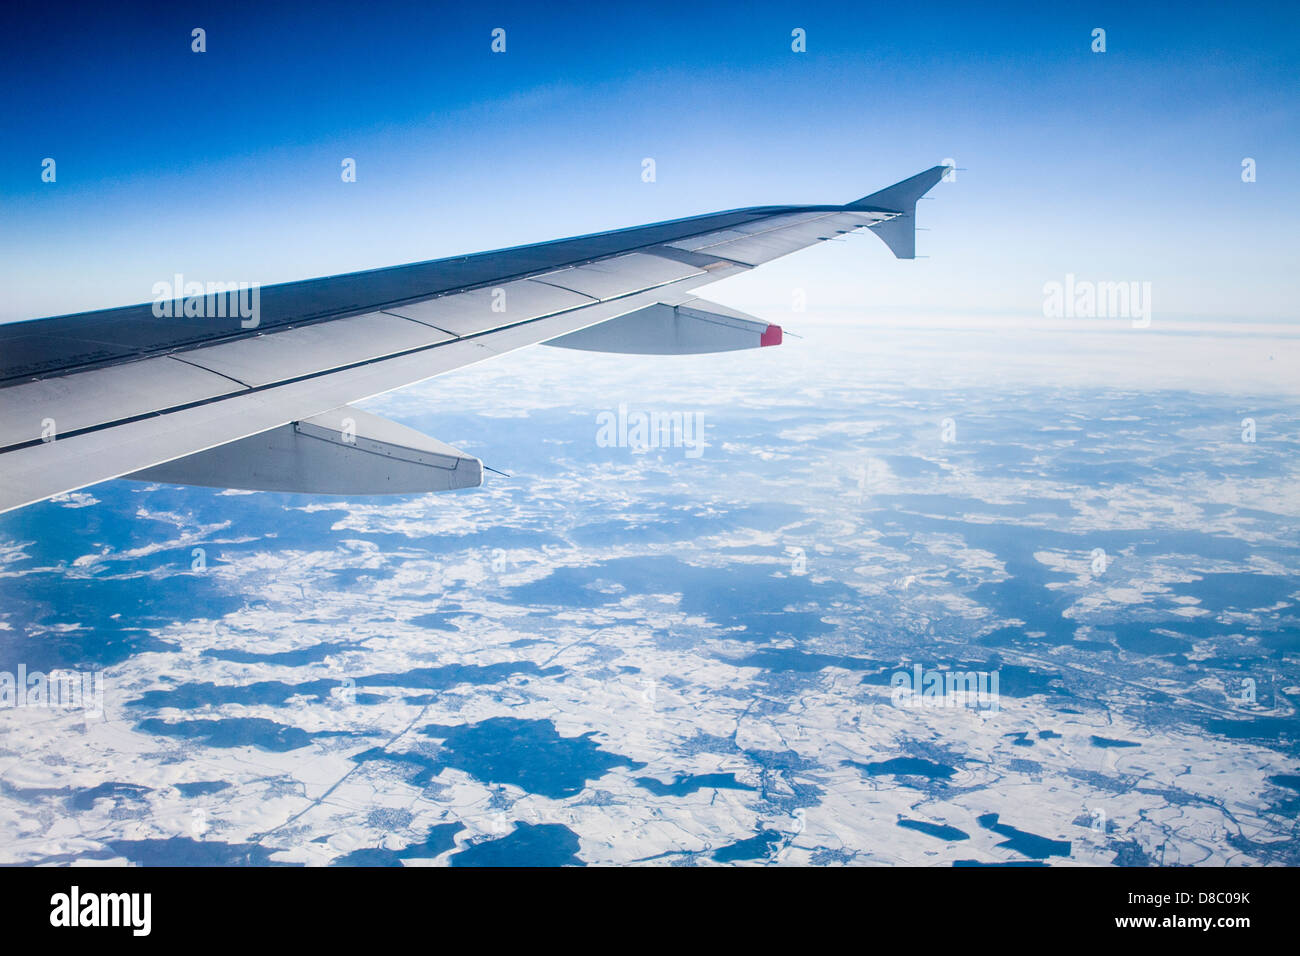 Airplane wing over a snowy land. - Stock Image